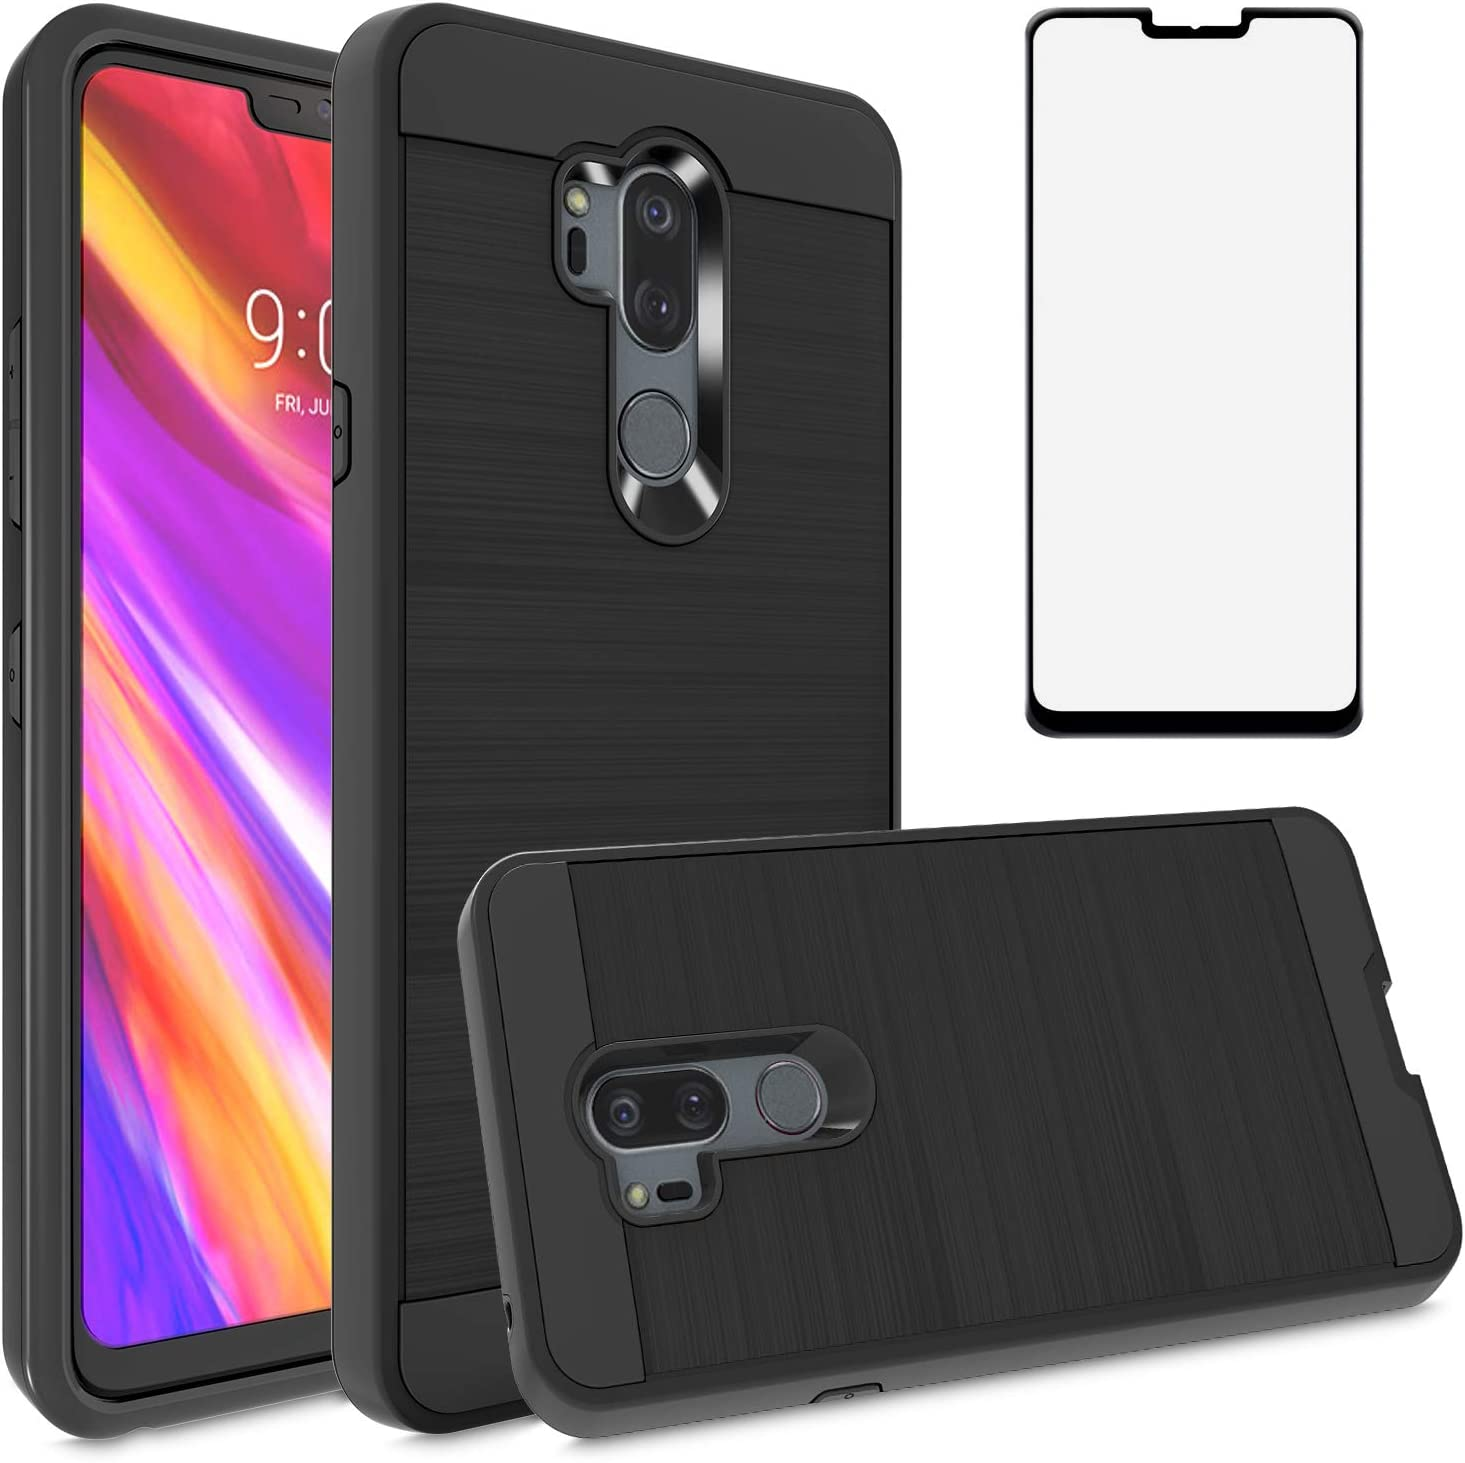 Asuwish Compatible with LG G7 ThinQ Phone Case Tempered Glass Screen Protector Cover Grip Slim Shockproof Protective Cell for LGG7 One G 7 Plus LG7 Fit LG7ThinQ 7G Thin Q G7+ G7thinq LGG7thinq Black